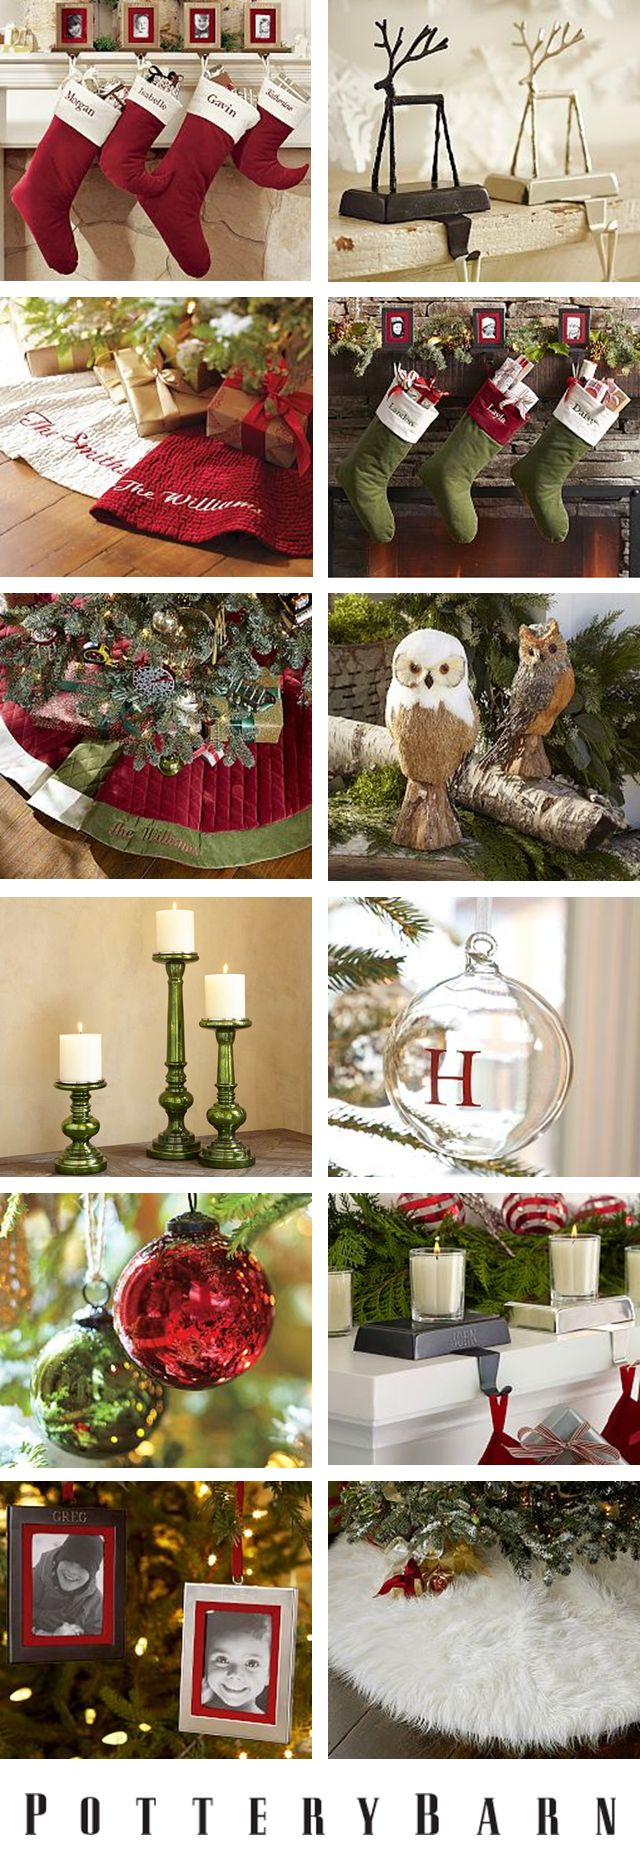 Pottery barn tree skirts - Pottery Barn Christmas Stockings And Tree Skirts And Ornaments Oh My